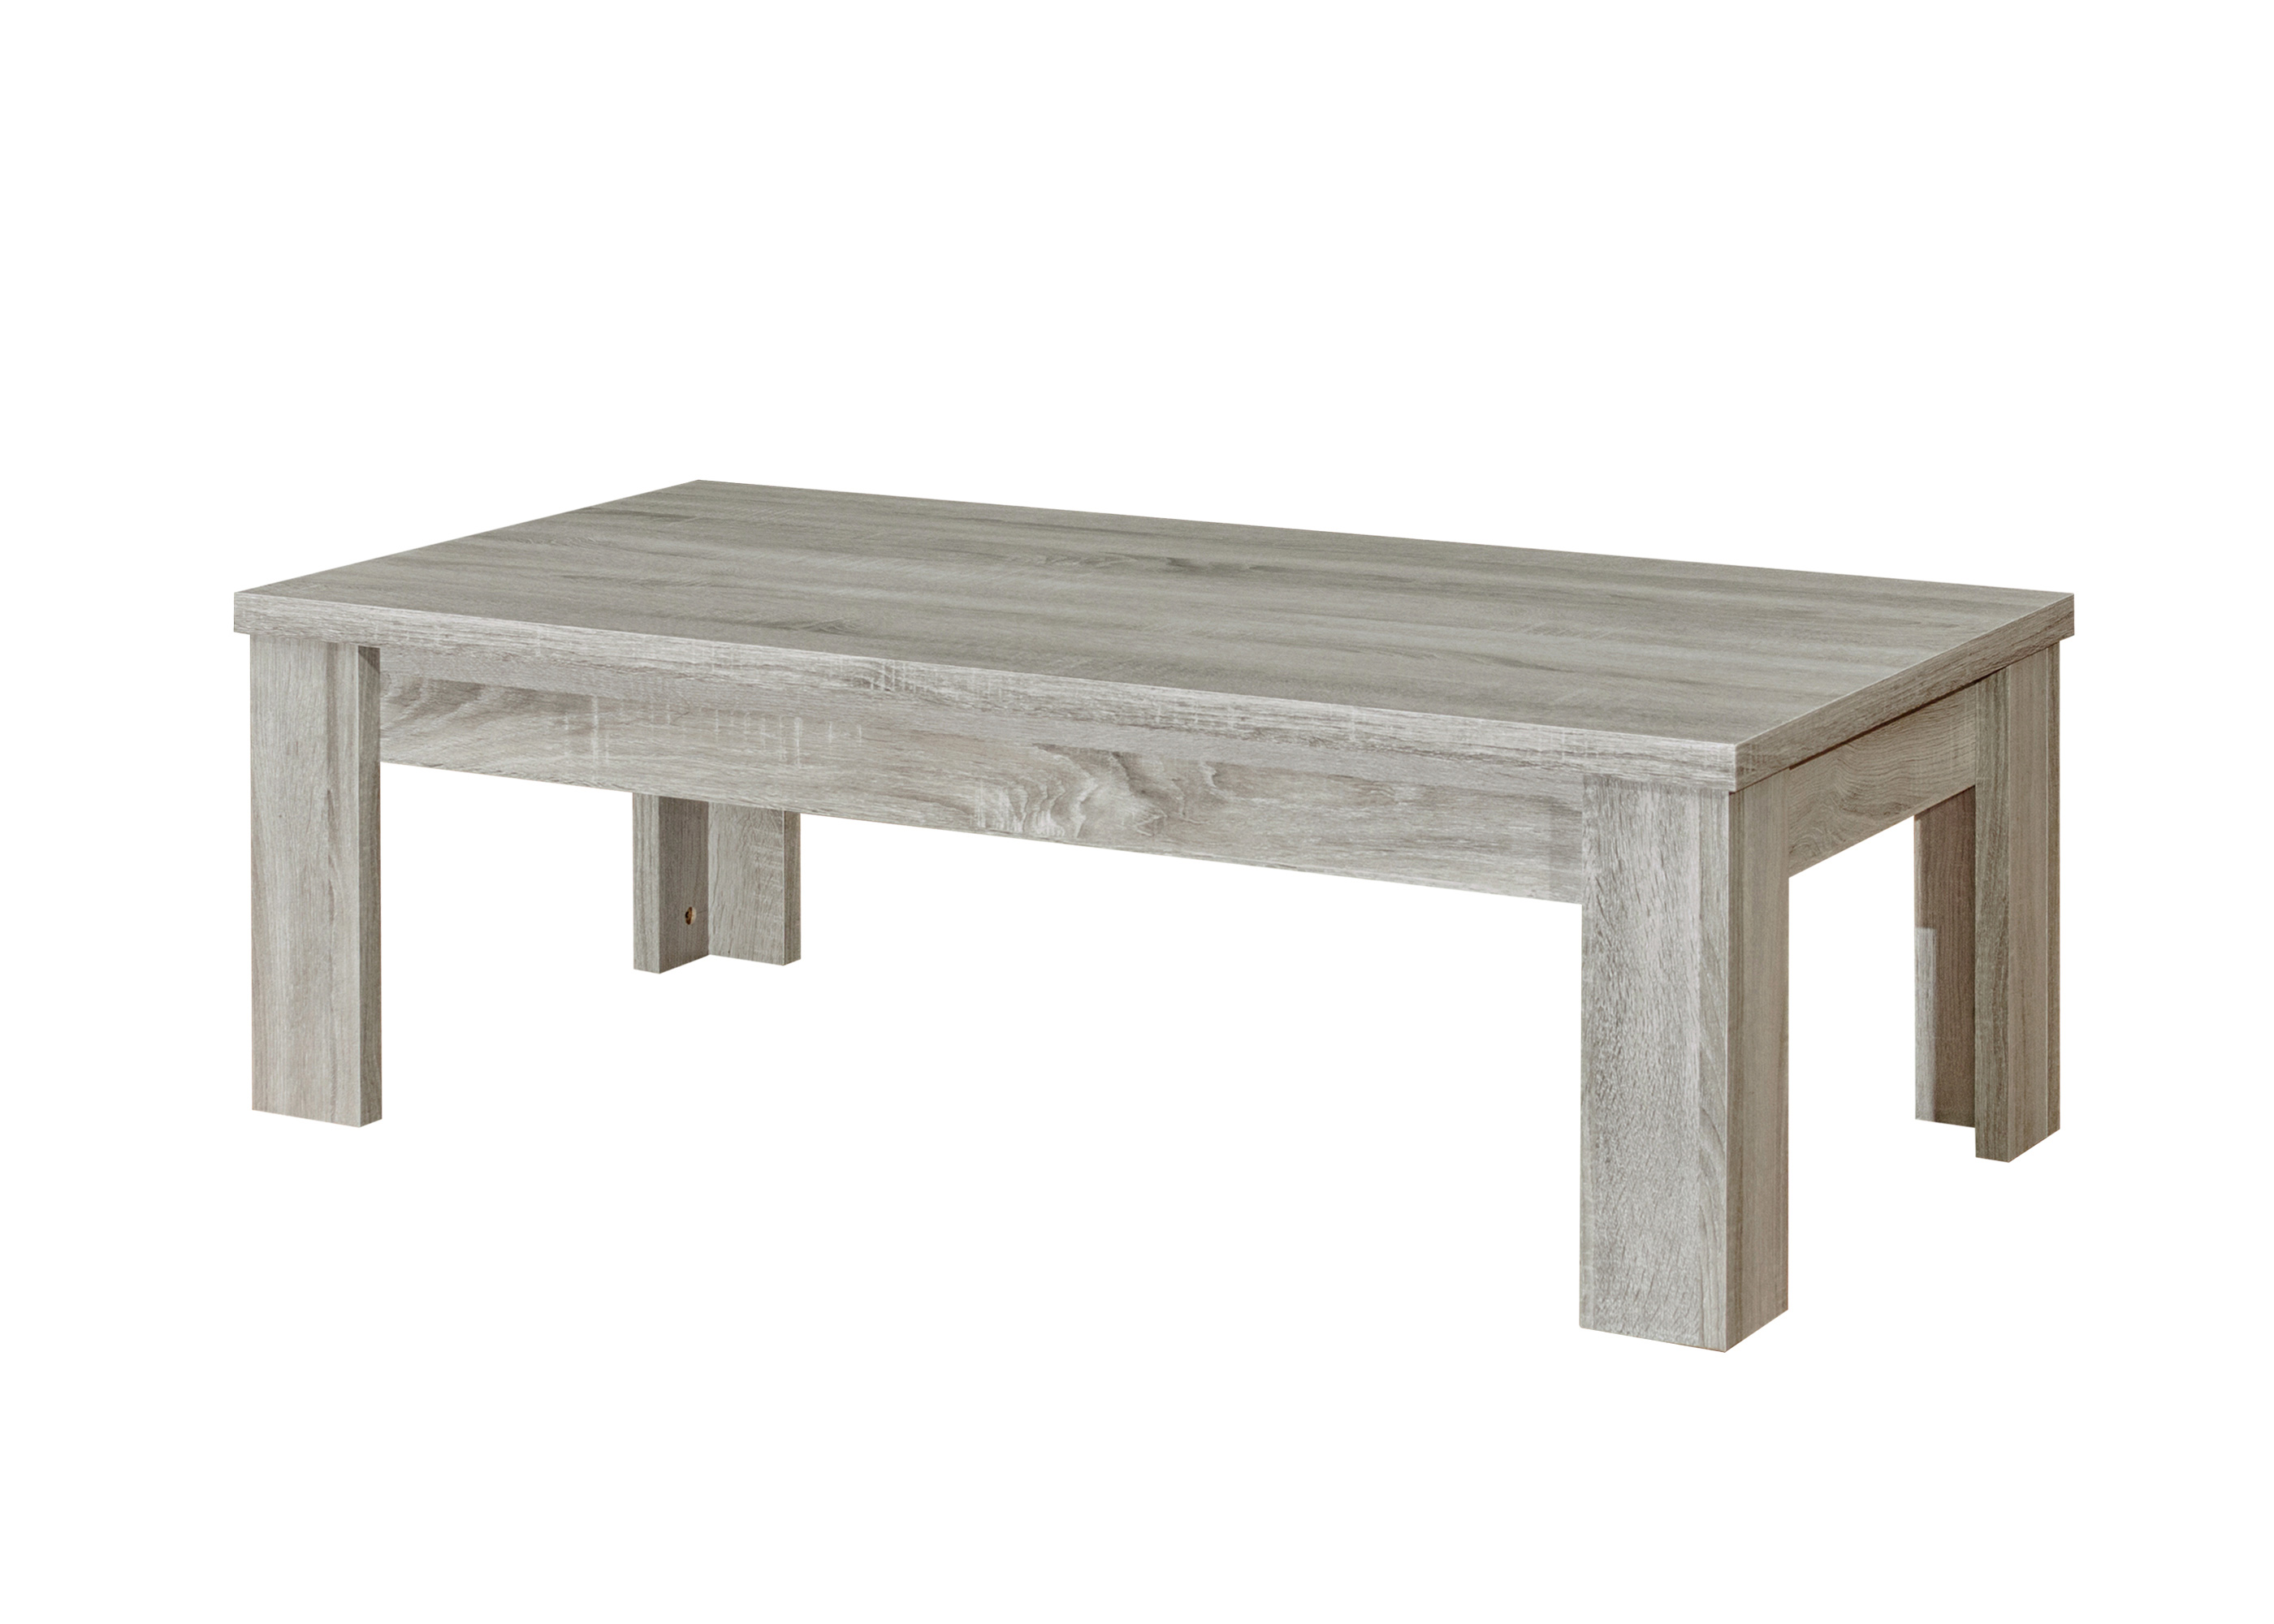 Table basse contemporaine coloris chêne gris Vigo